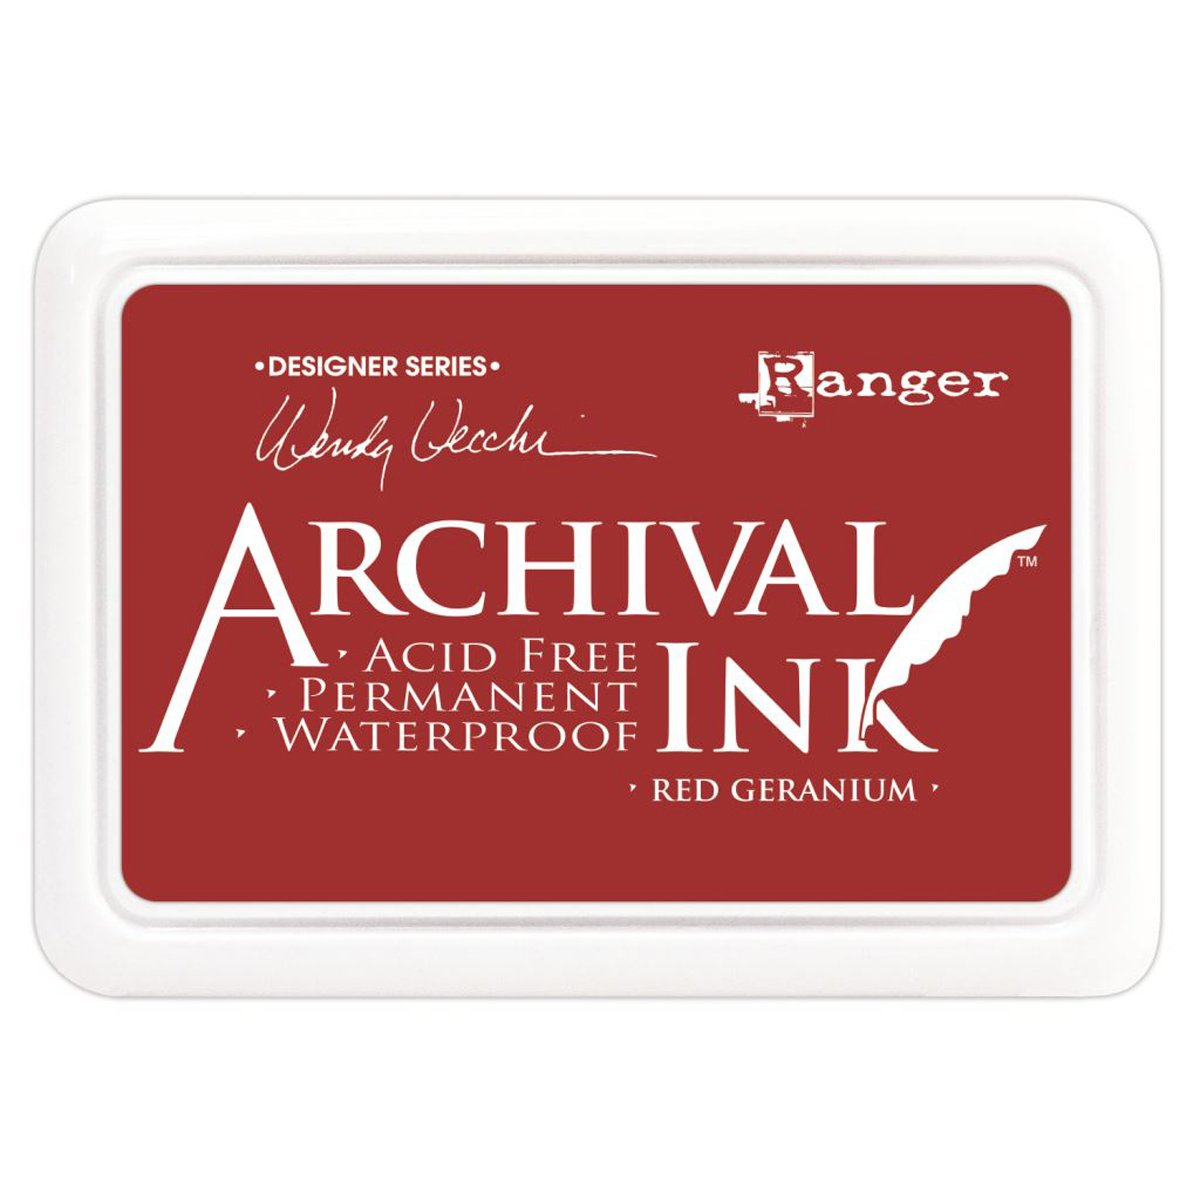 Ranger Geranium Archival Ink, Red Luscombe G T Luscombe AID-38993 Coloring and Design Books